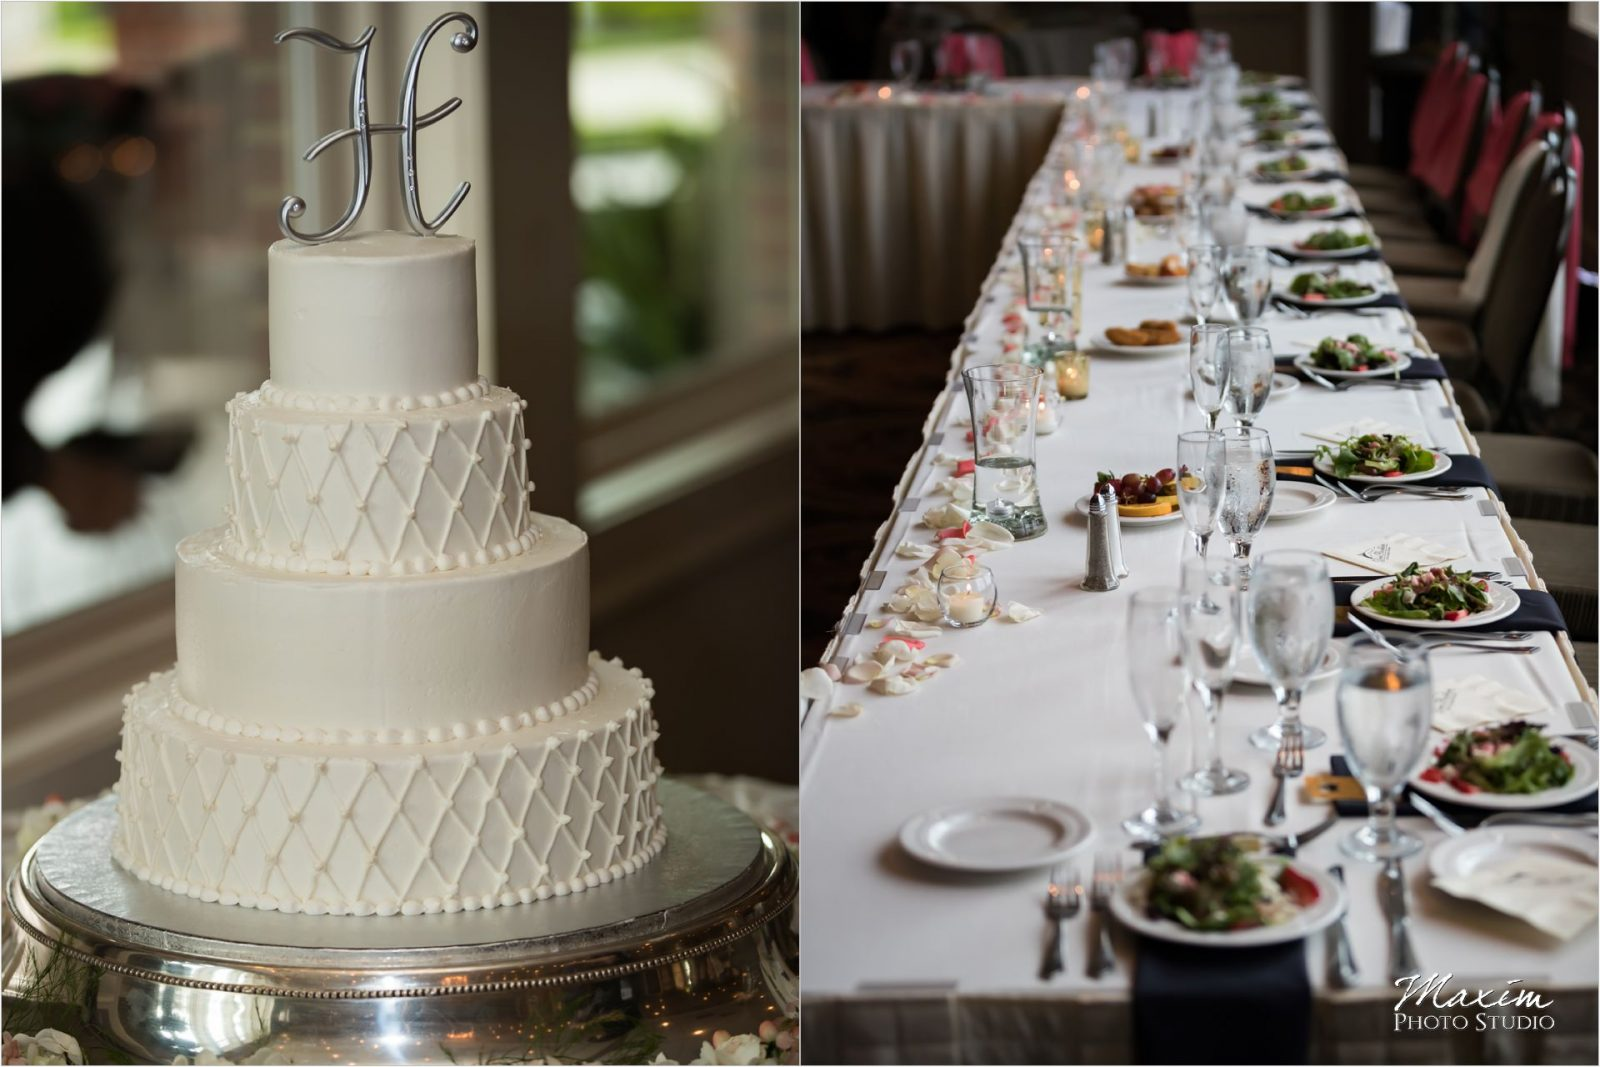 Drees Pavilion Wedding Reception cake